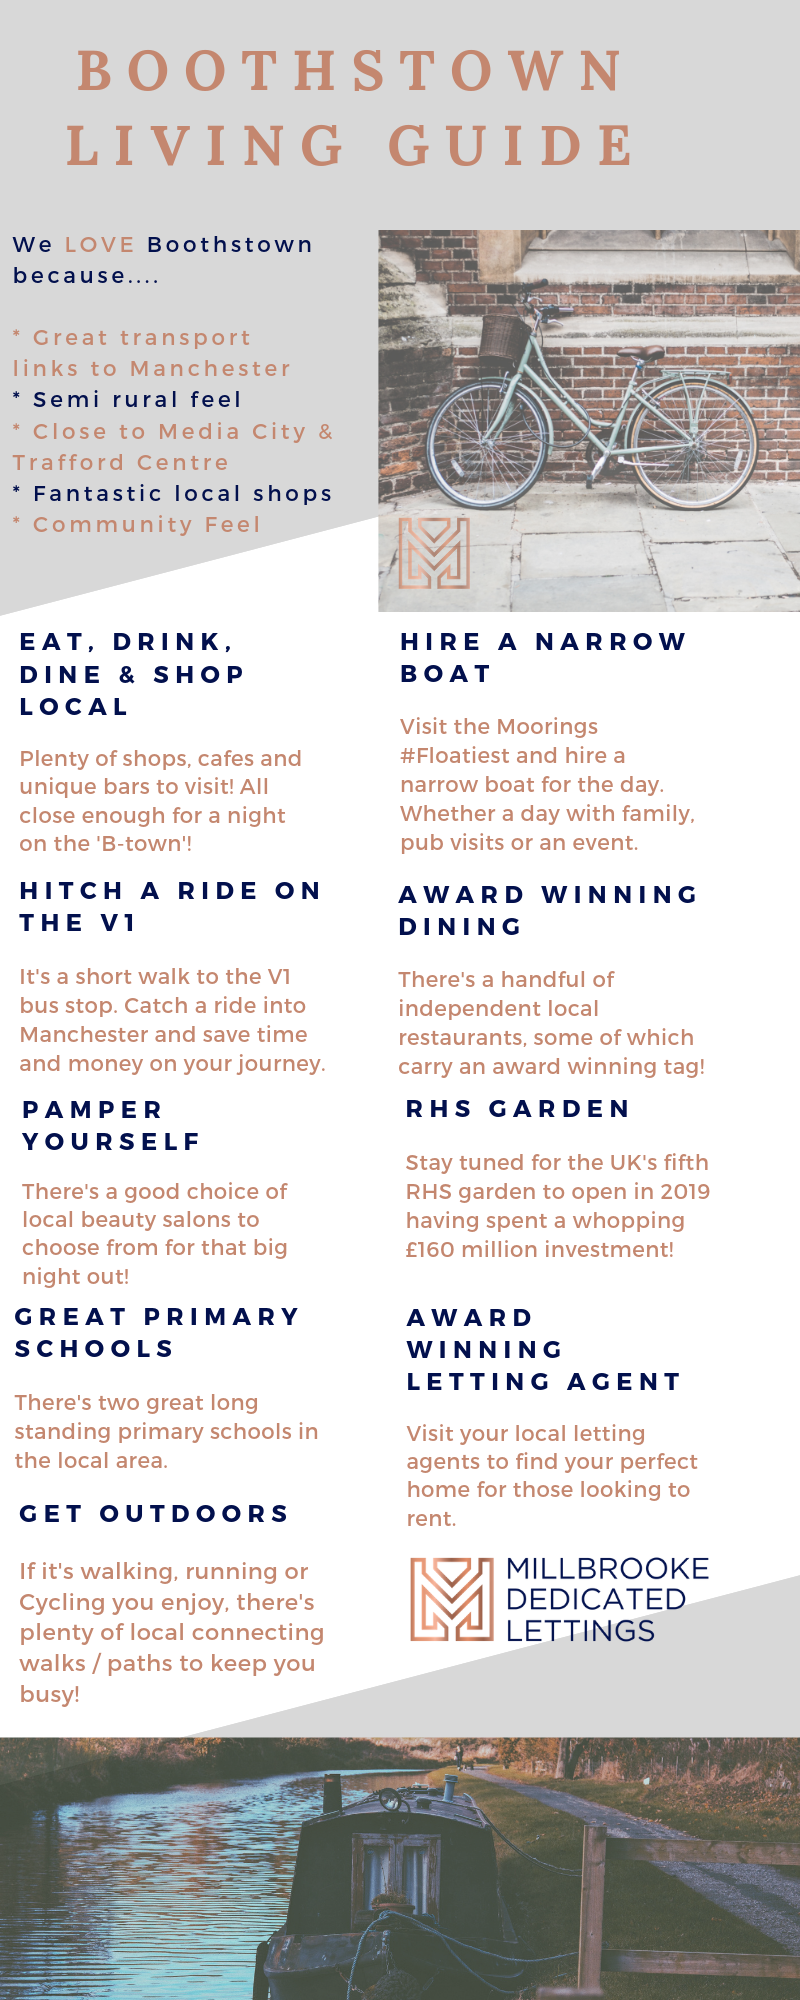 M28 Living Guide (2).png